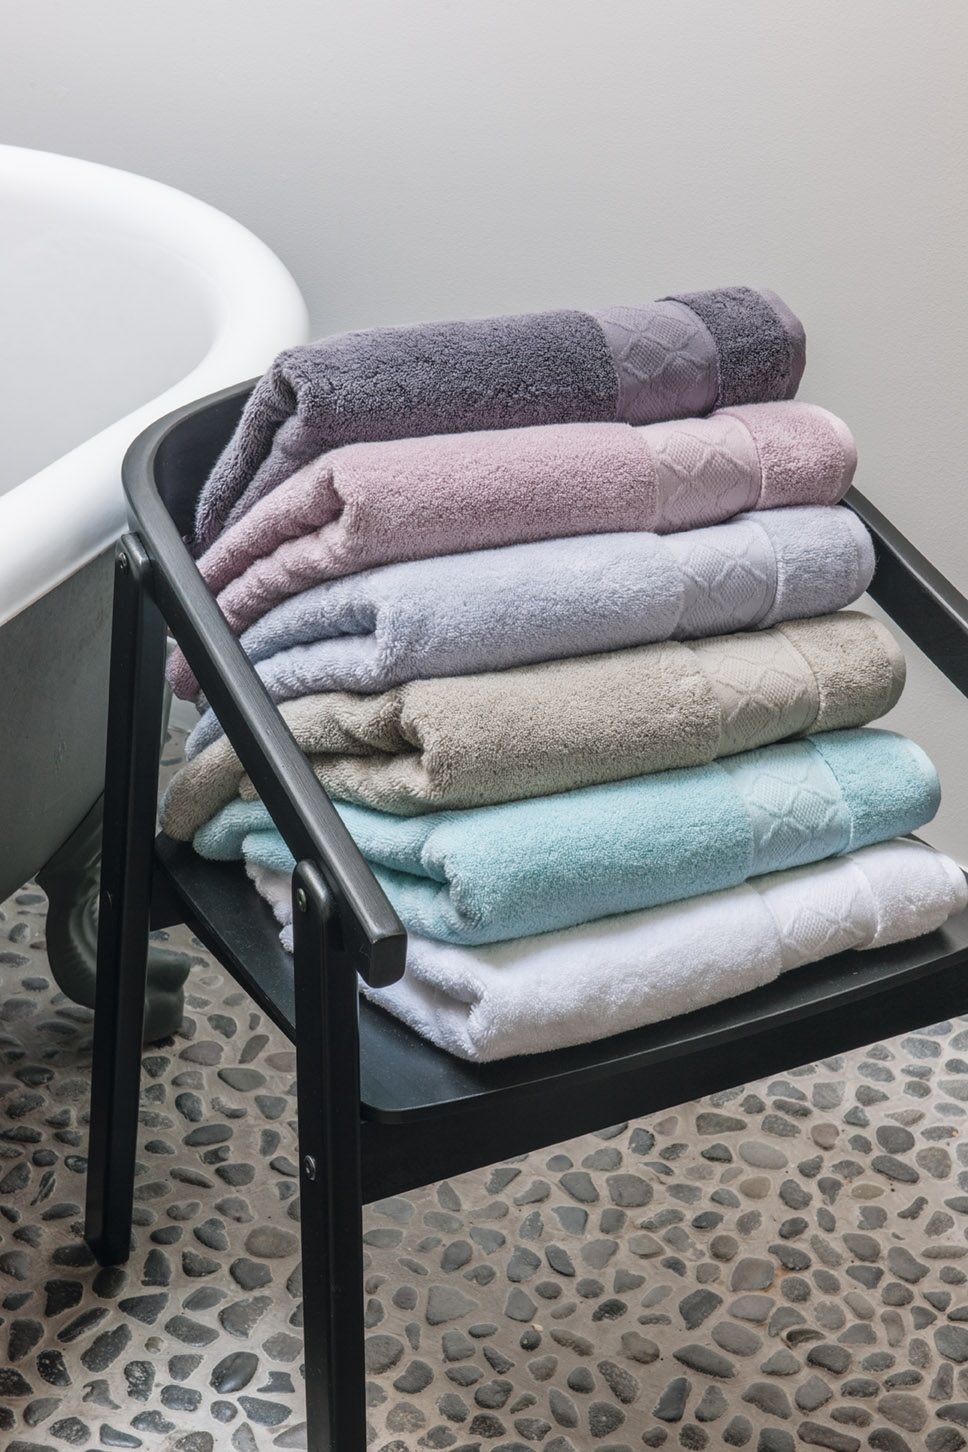 Enhance Your Bathroom With The Caresse Terry Towels Inspired By